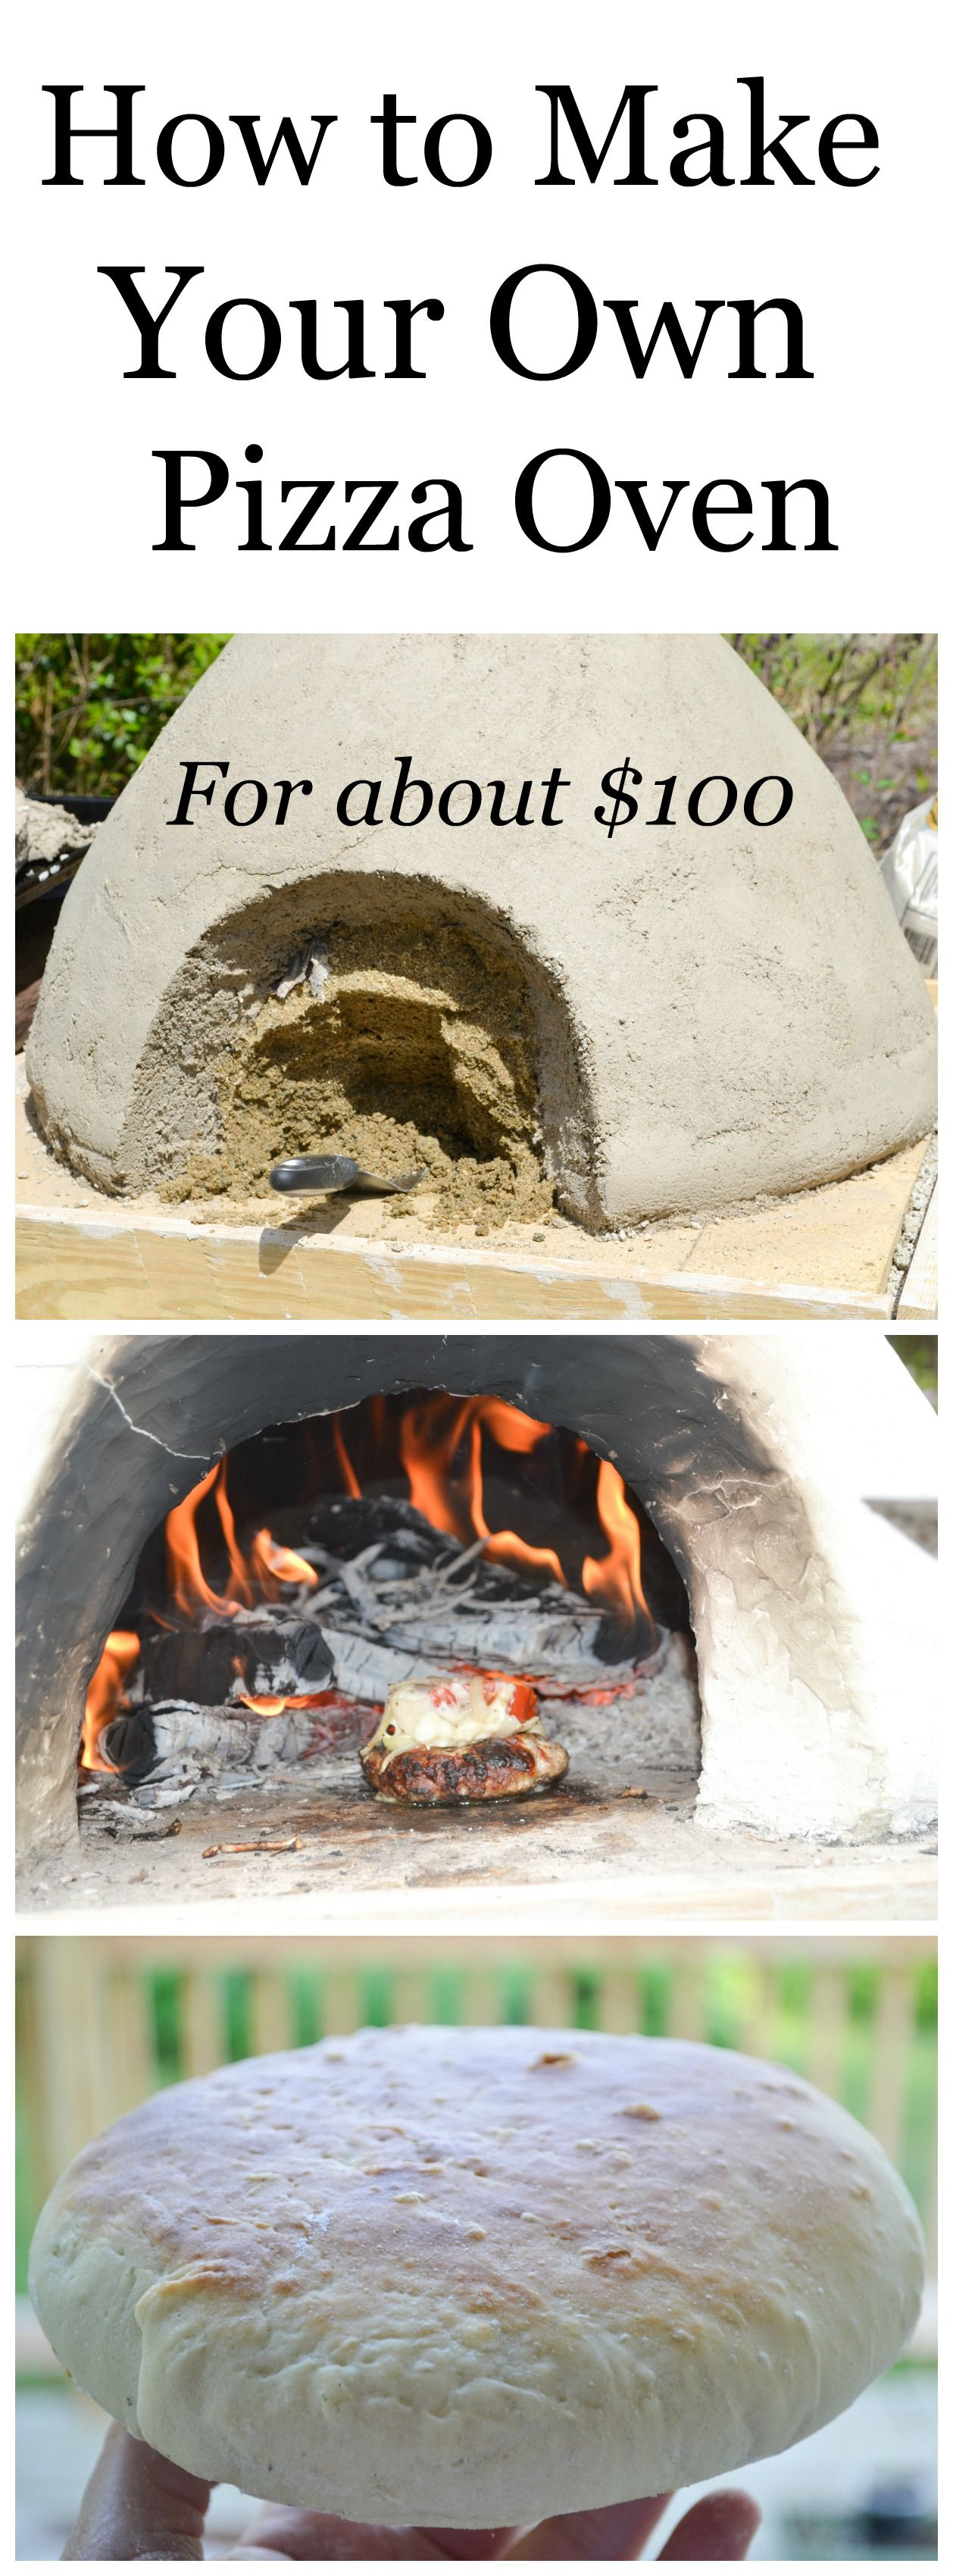 learn how to make a pizza oven for about 100 and fire bake chicken